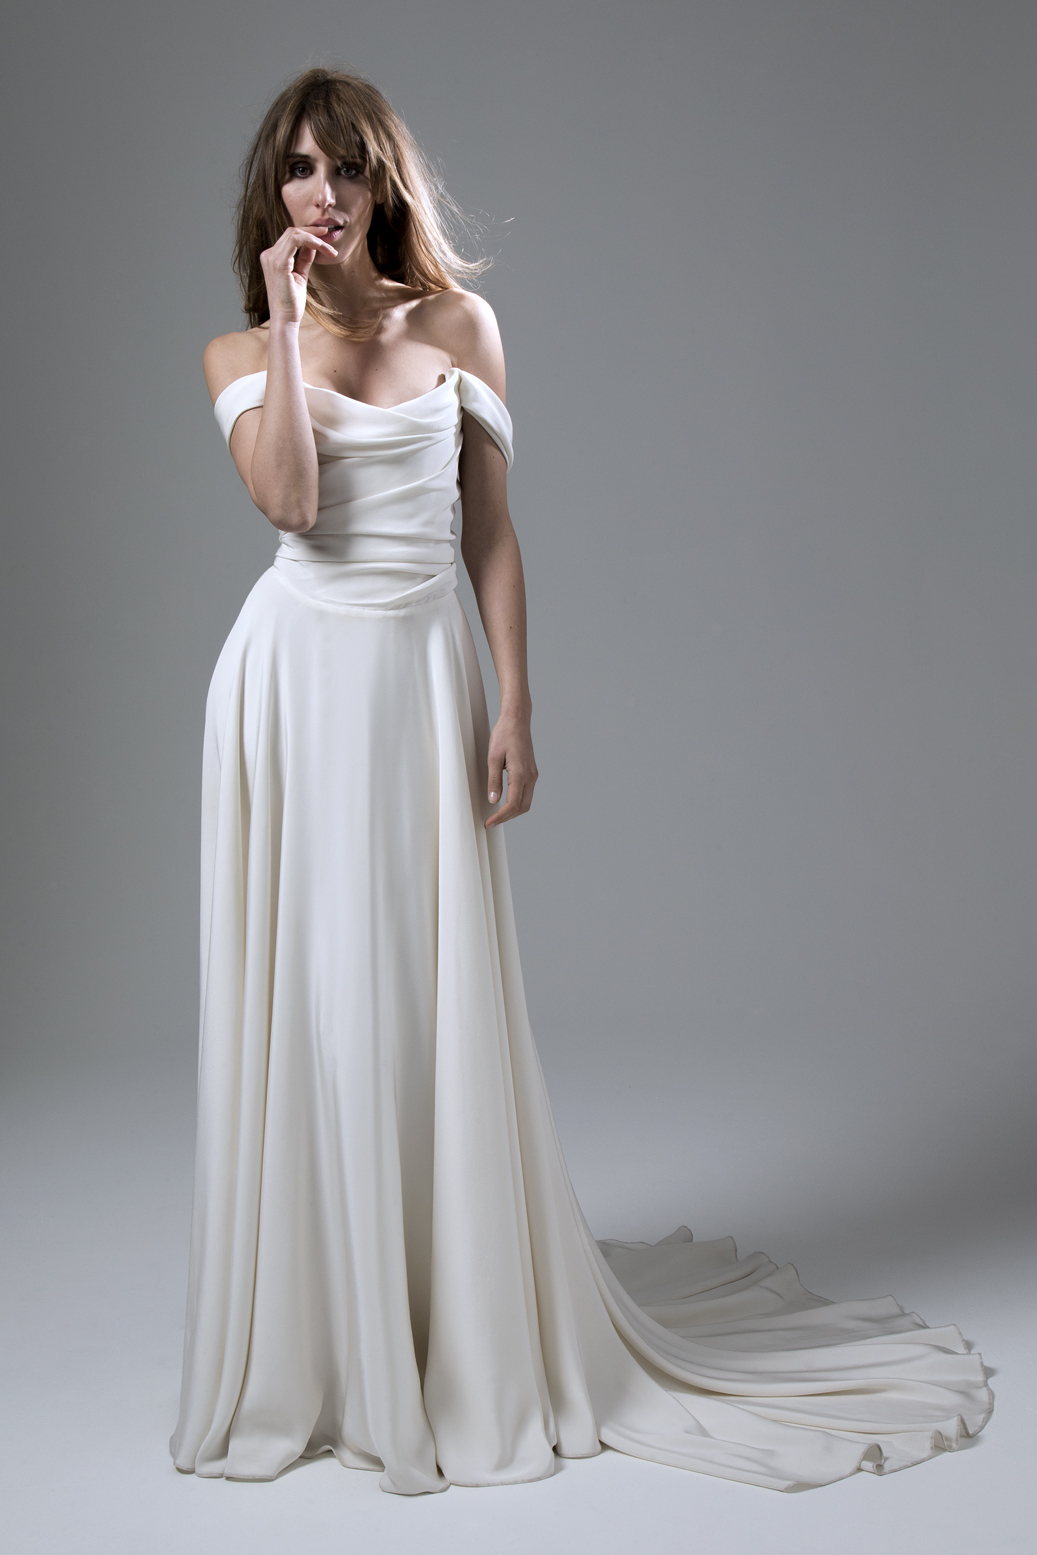 Charlotte Silk Crepe Corset Dress with Full Circle Skirt Wedding Dress by Halfpenny London